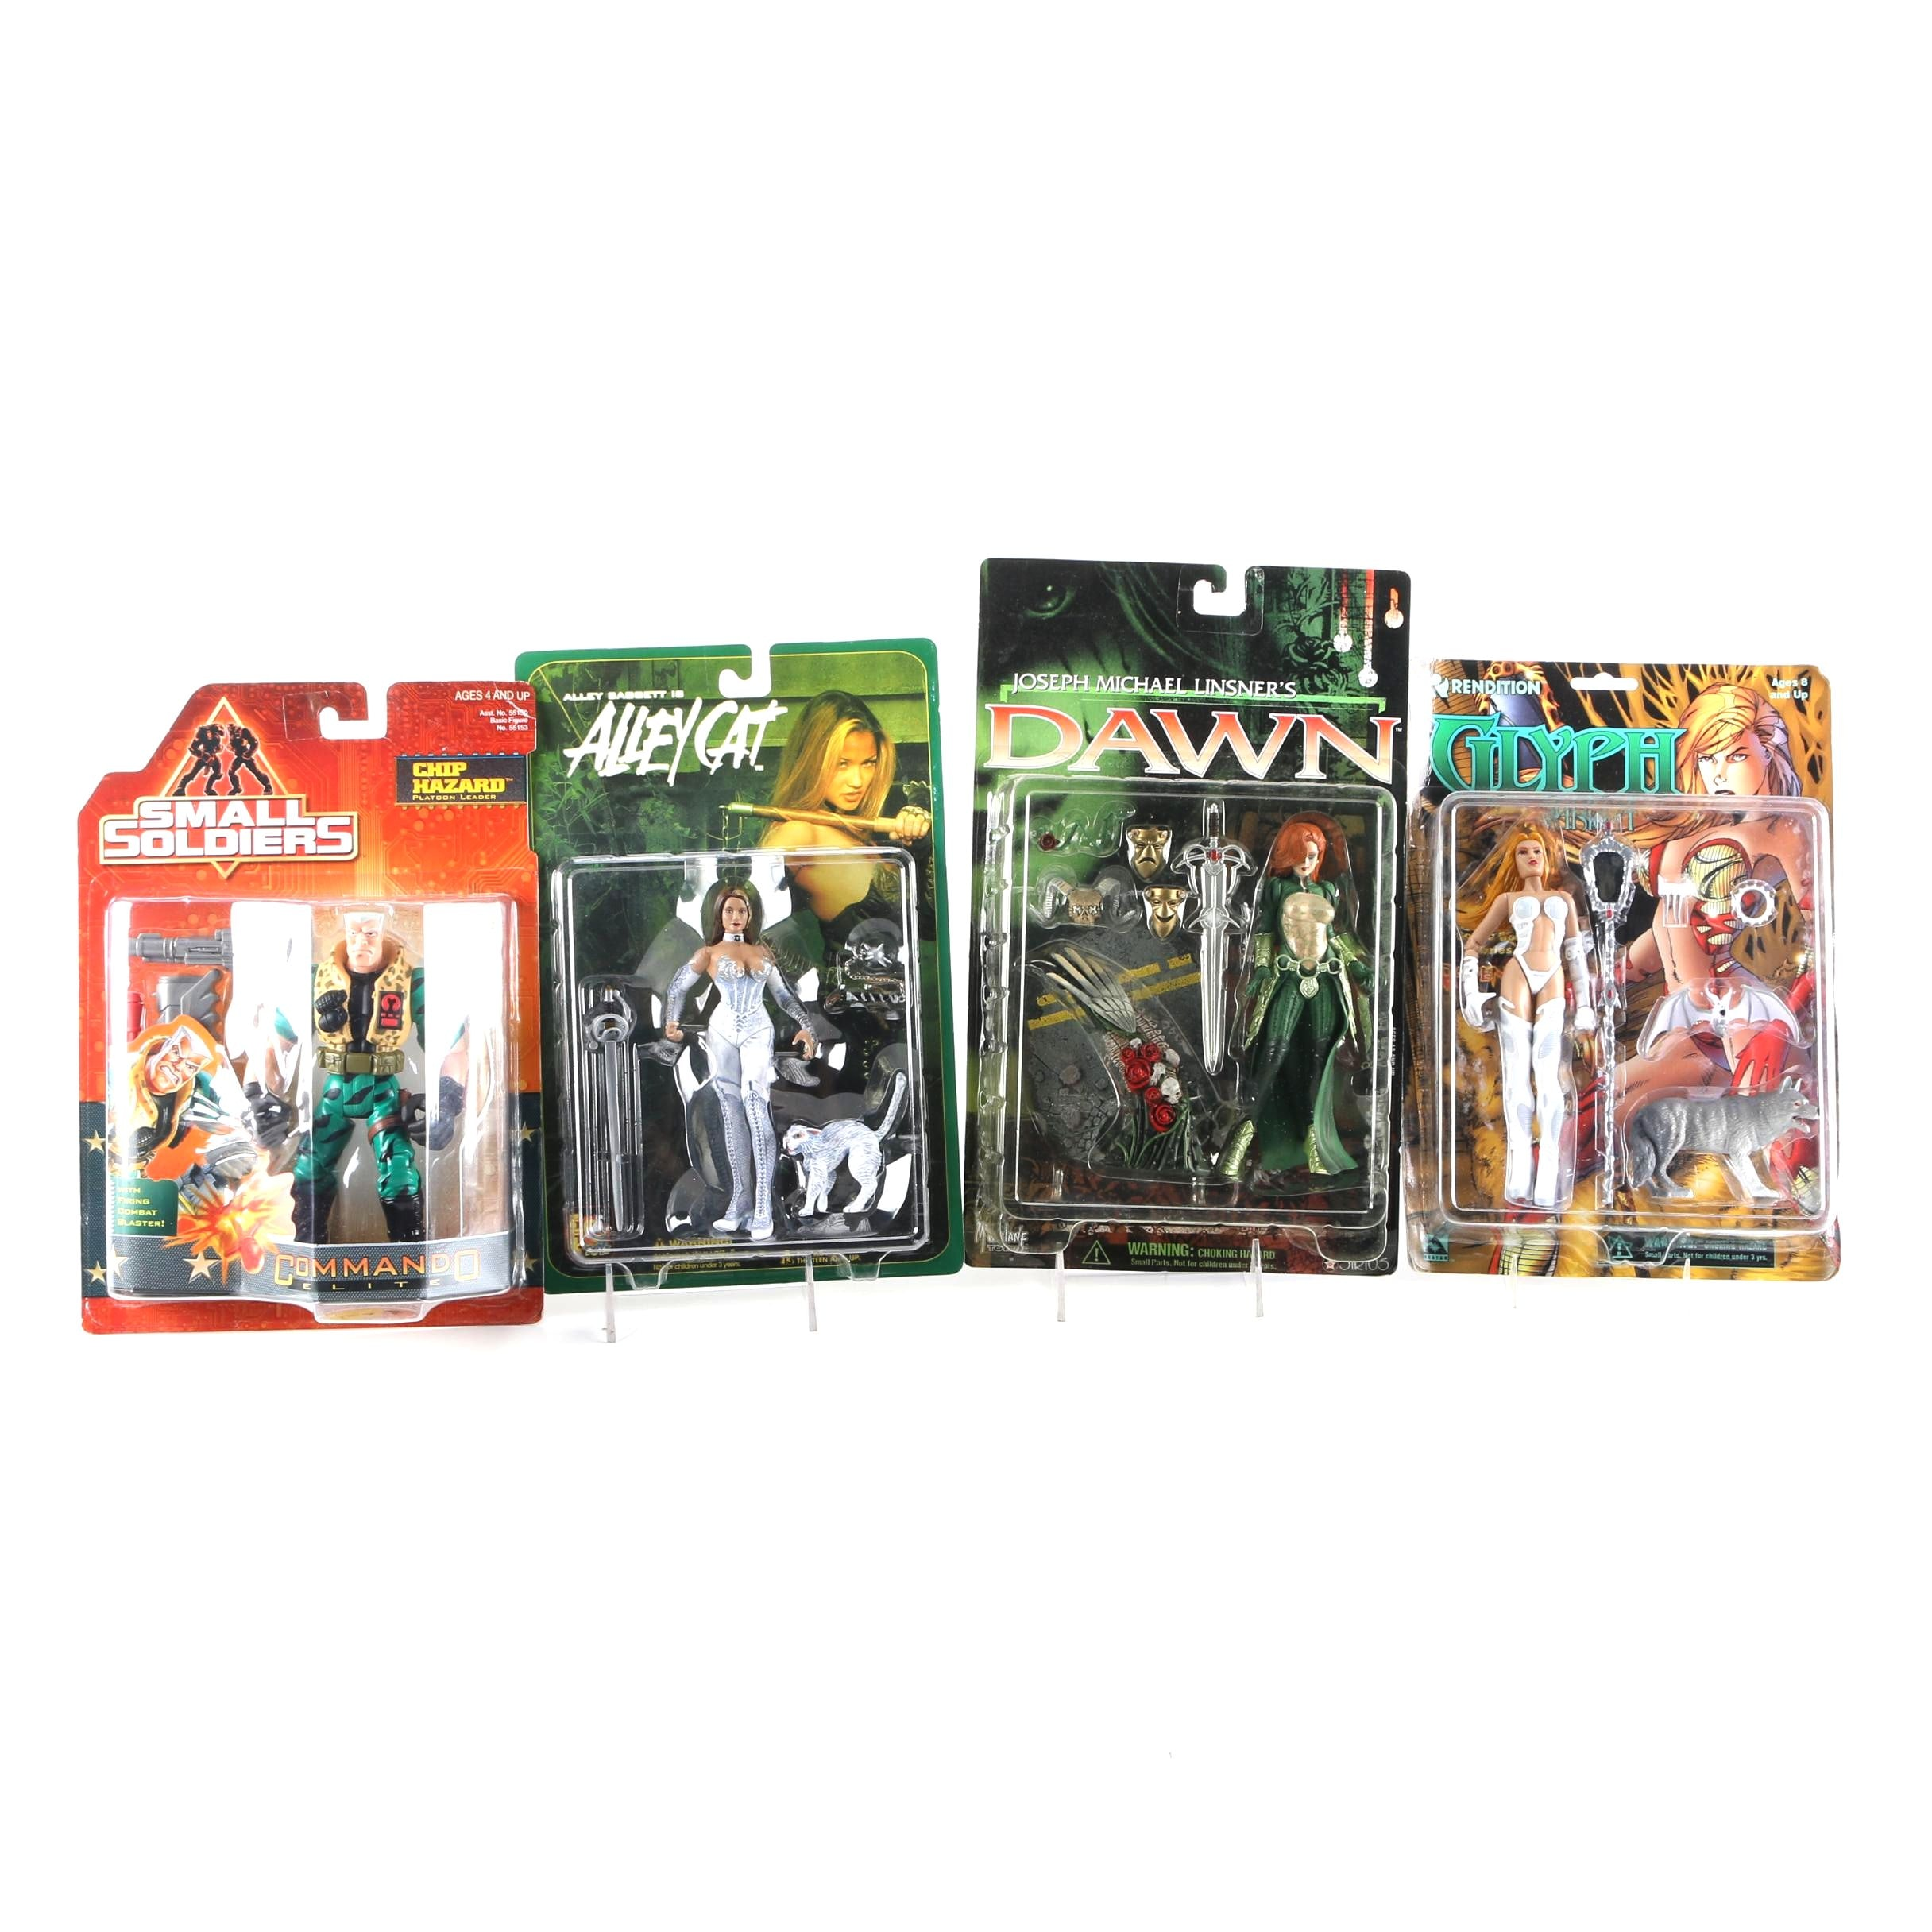 Sealed-on-Card Action Figure Toys